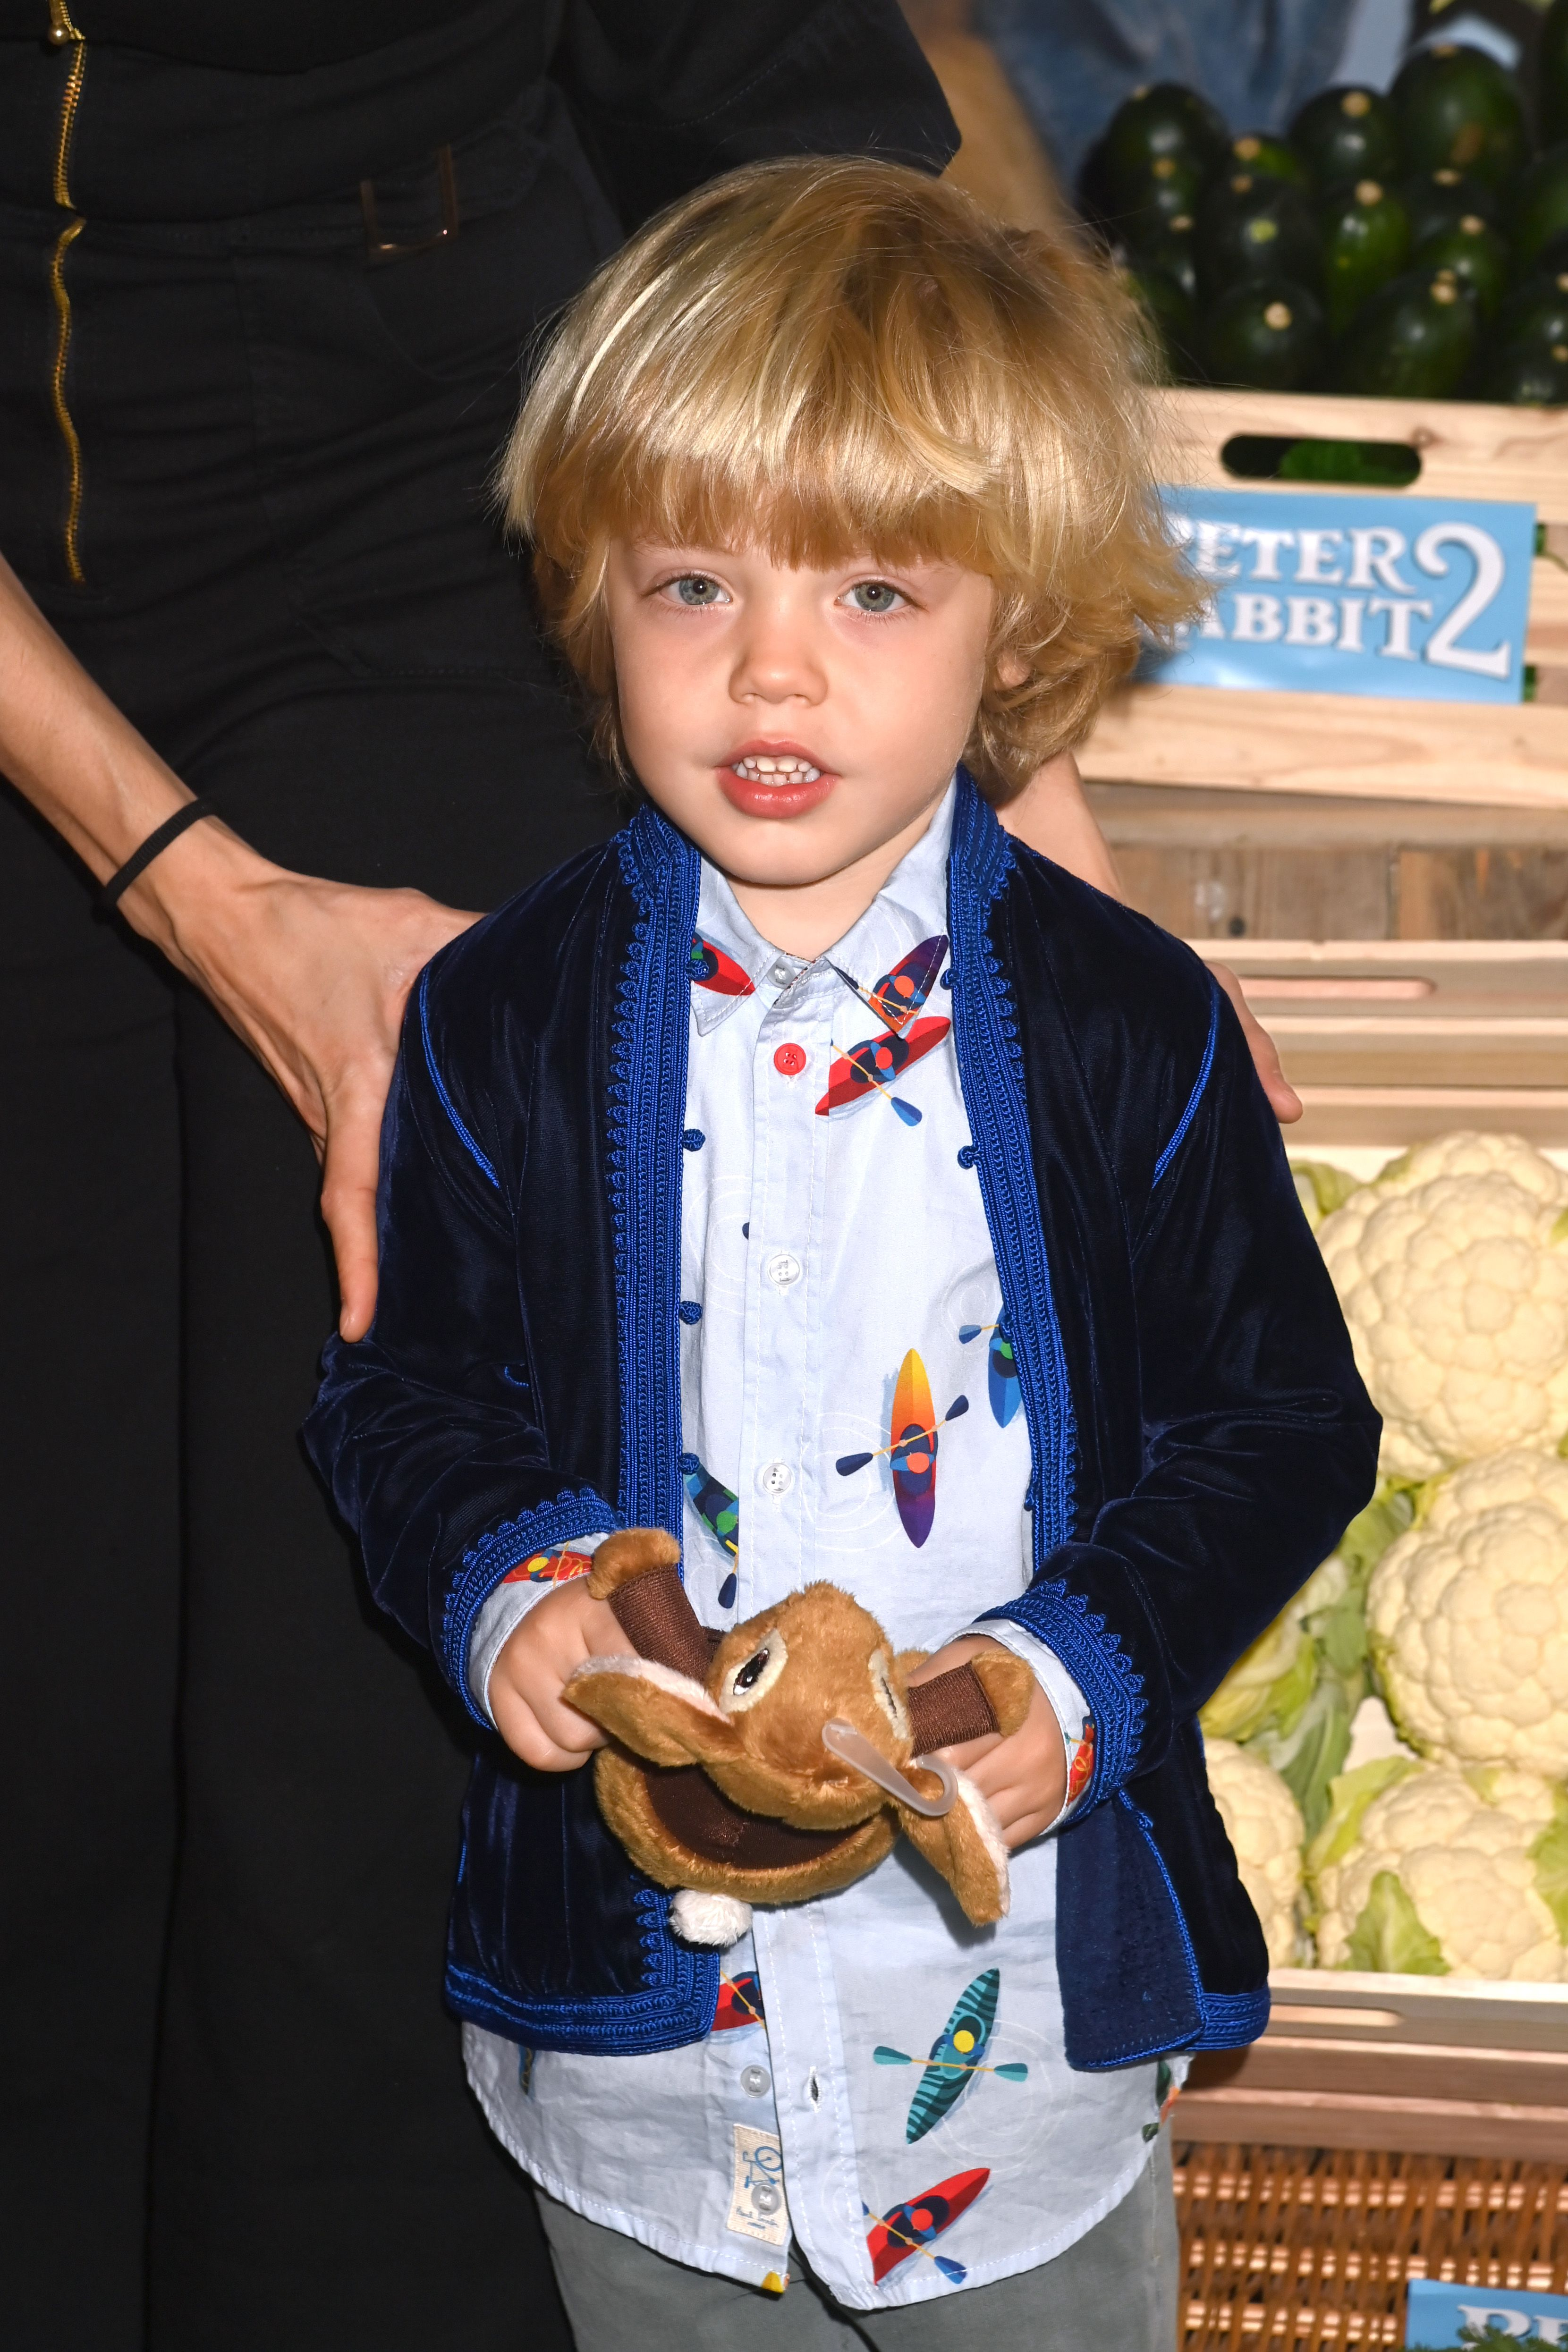 """Mick Jagger's son Dev Jagger attends the """"Peter Rabbit 2"""" UK Gala Screening at Picturehouse Central on May 23, 2021   Photo: Getty Images"""